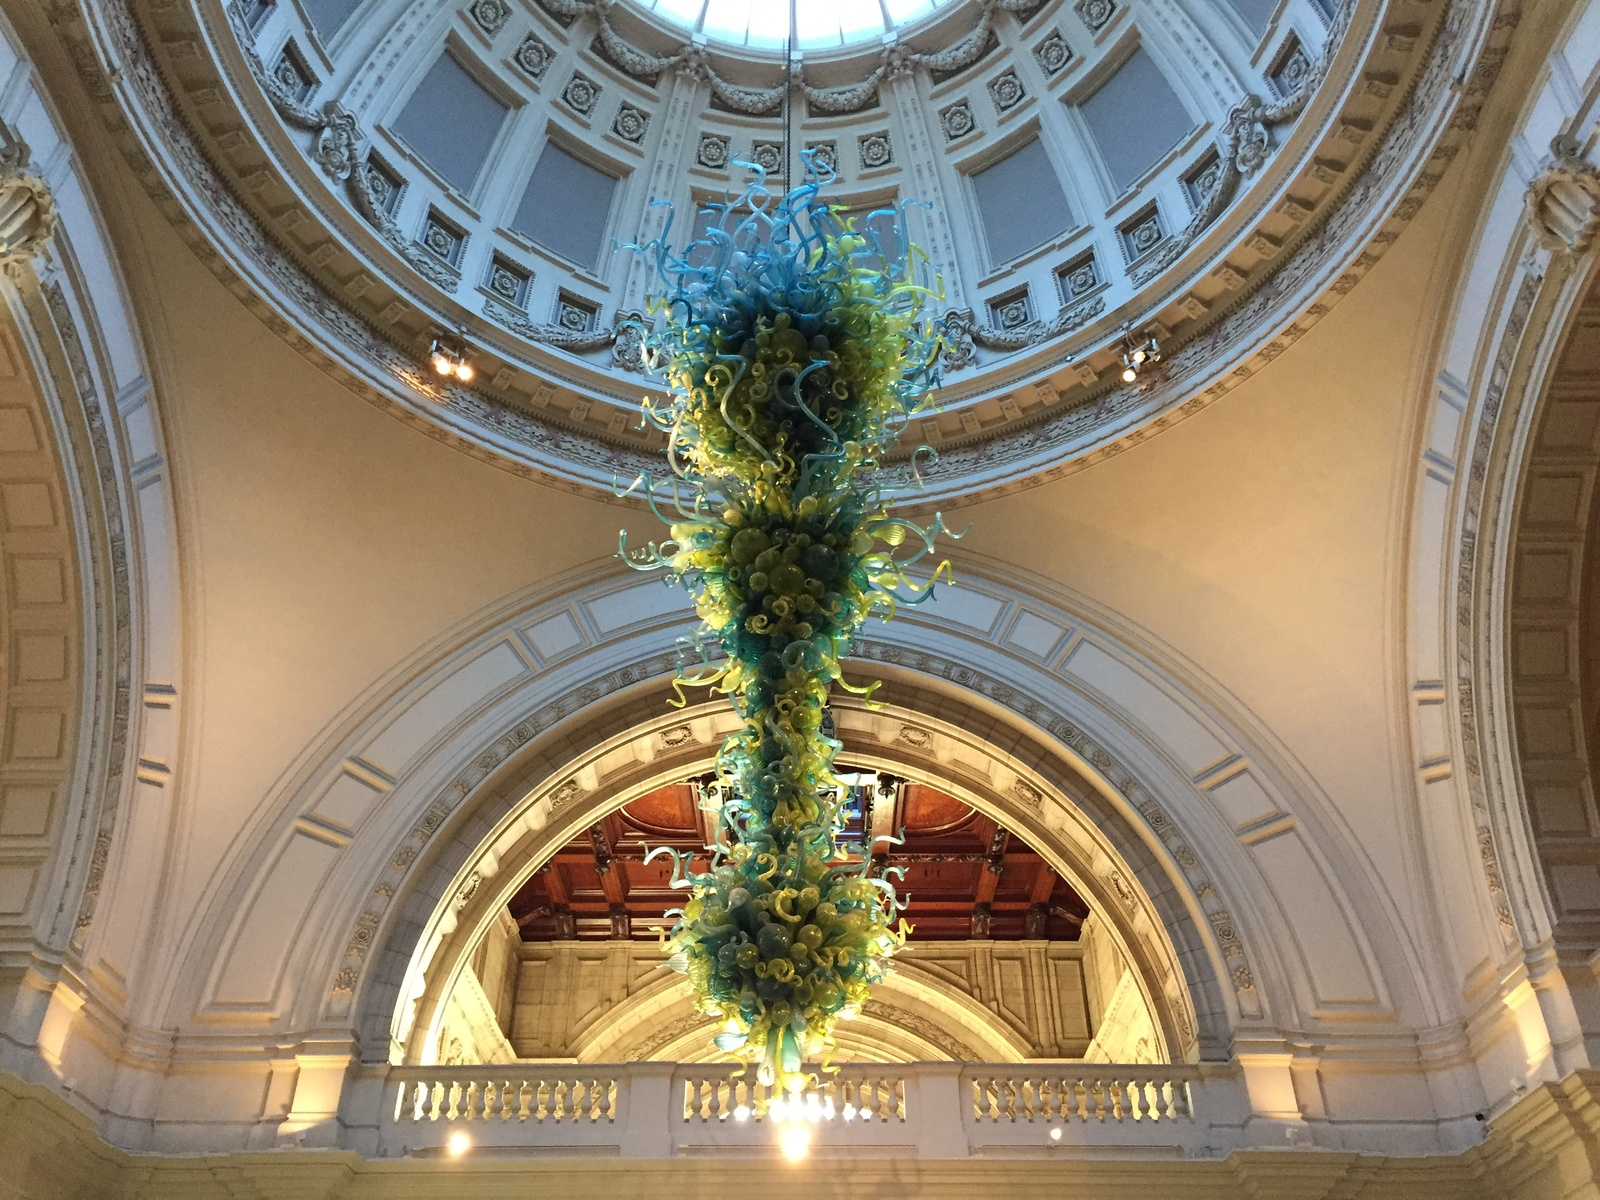 The Rotunda Chandelier at the V&A